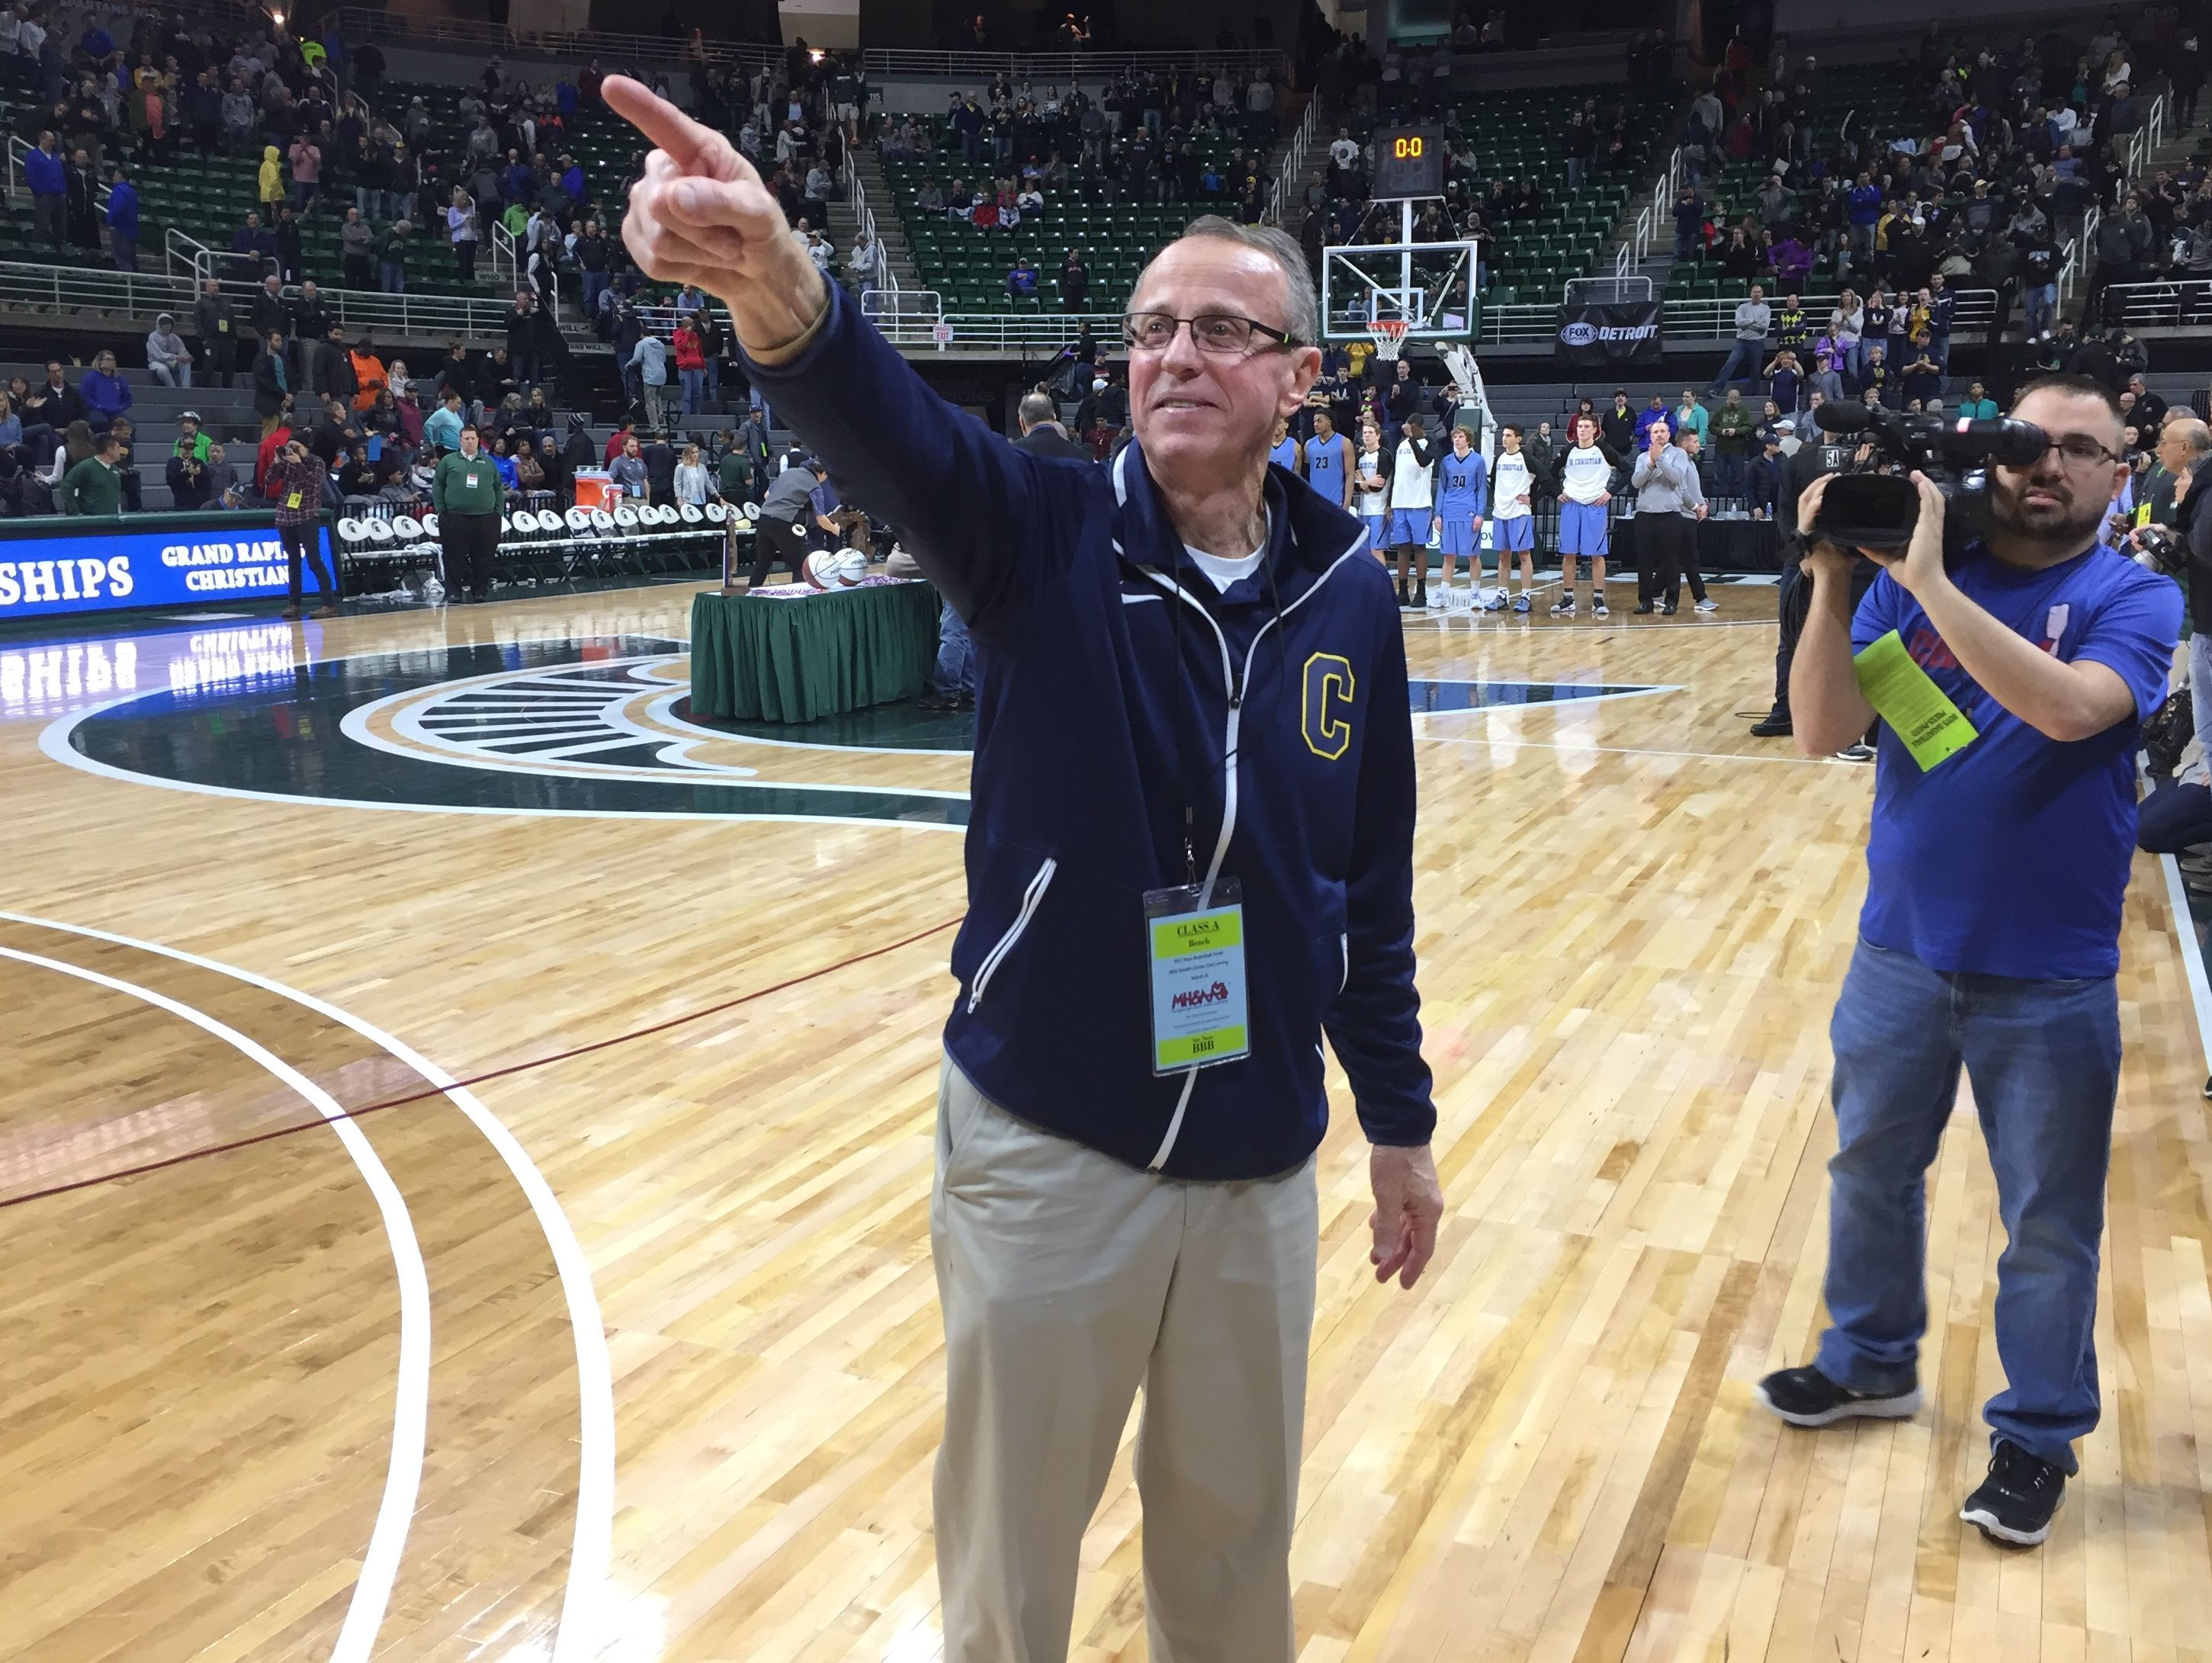 Clarkston coach Dan Fife points to the crowd after his team's 75-69 win over Grand Rapids Christian in the Class A final at the Breslin Center on Saturday, March 25, 2017.